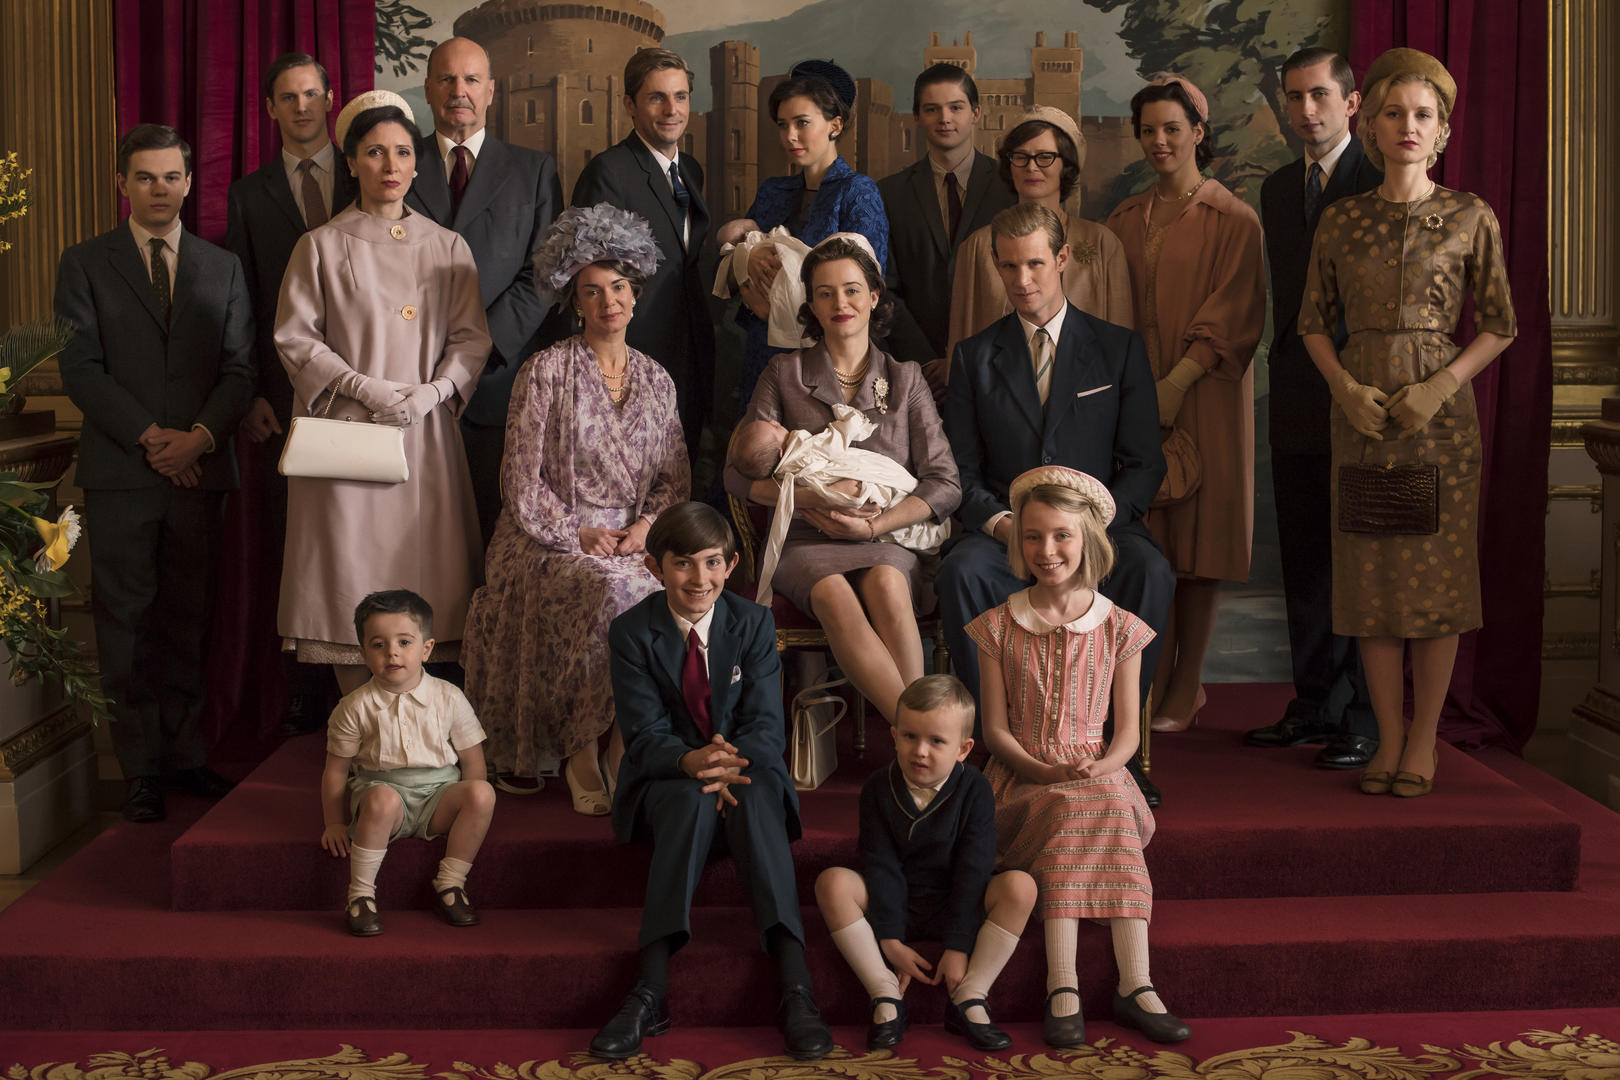 The Crown - Tony, Margaret, Queen Mum, Elizabeth, Philip, Charles, Anne - The Windsor family comes together for a group photo (Netflix, JG)